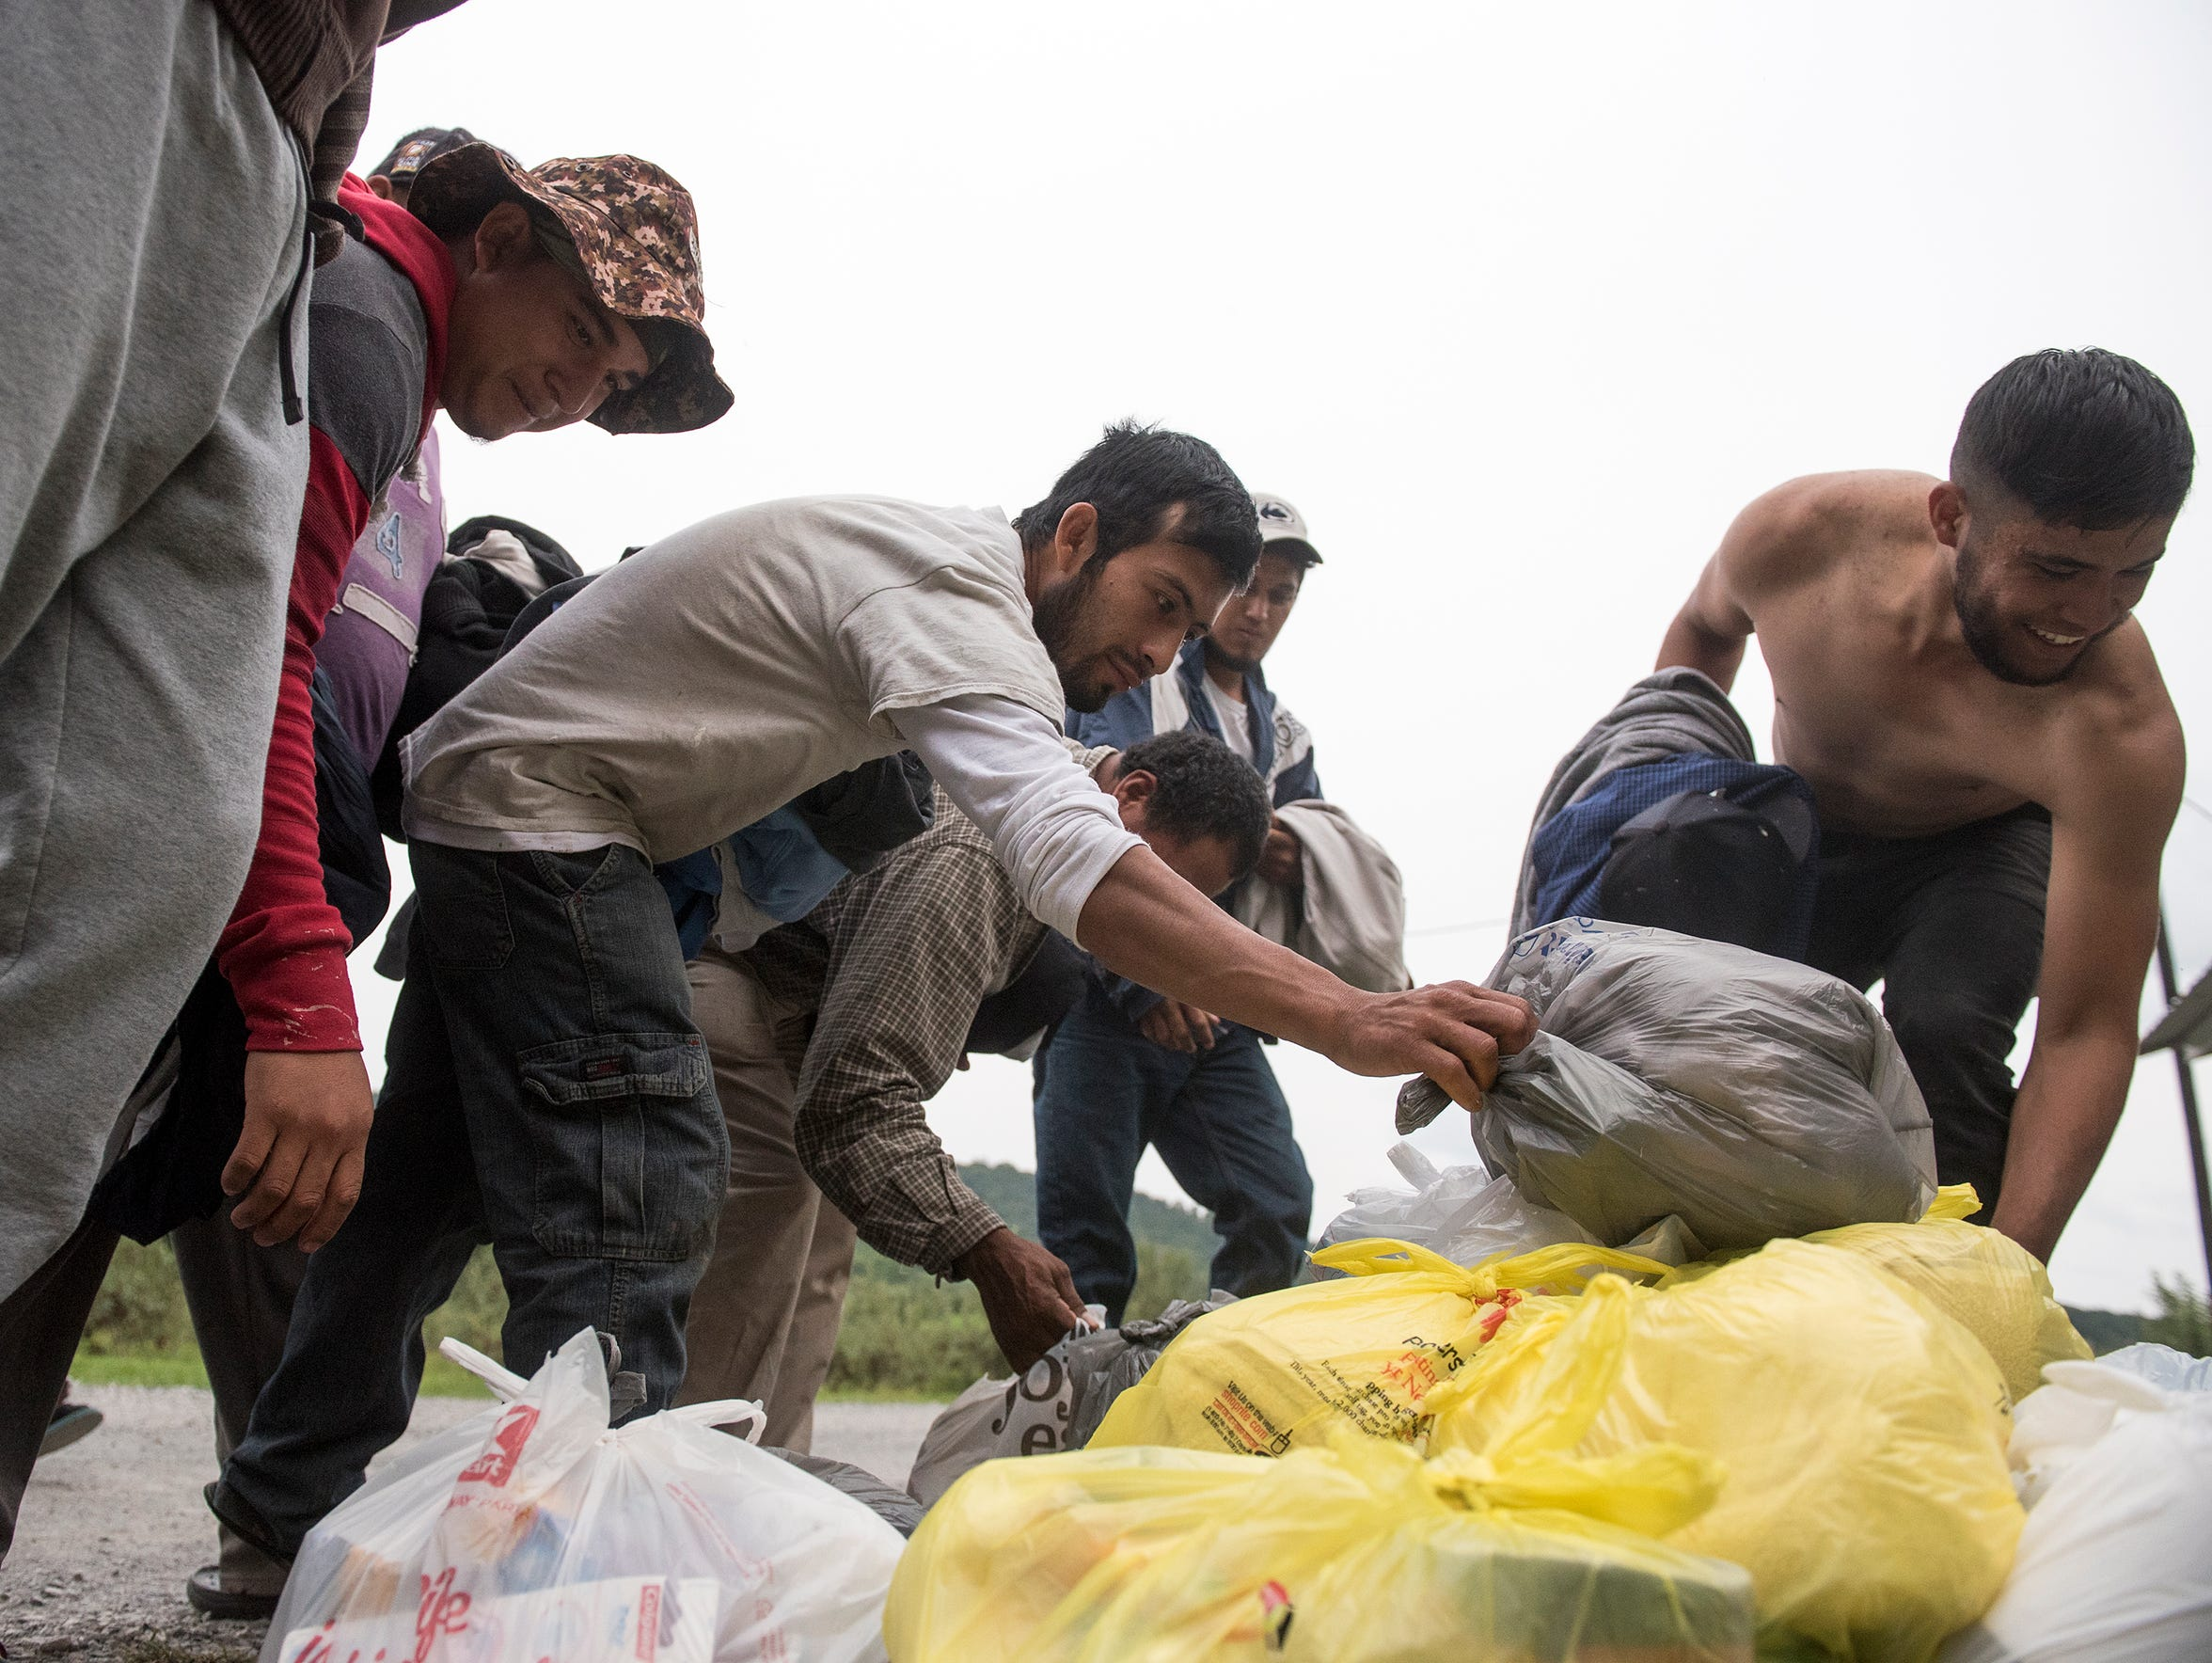 Migrant workers each take a bag of toiletries, which